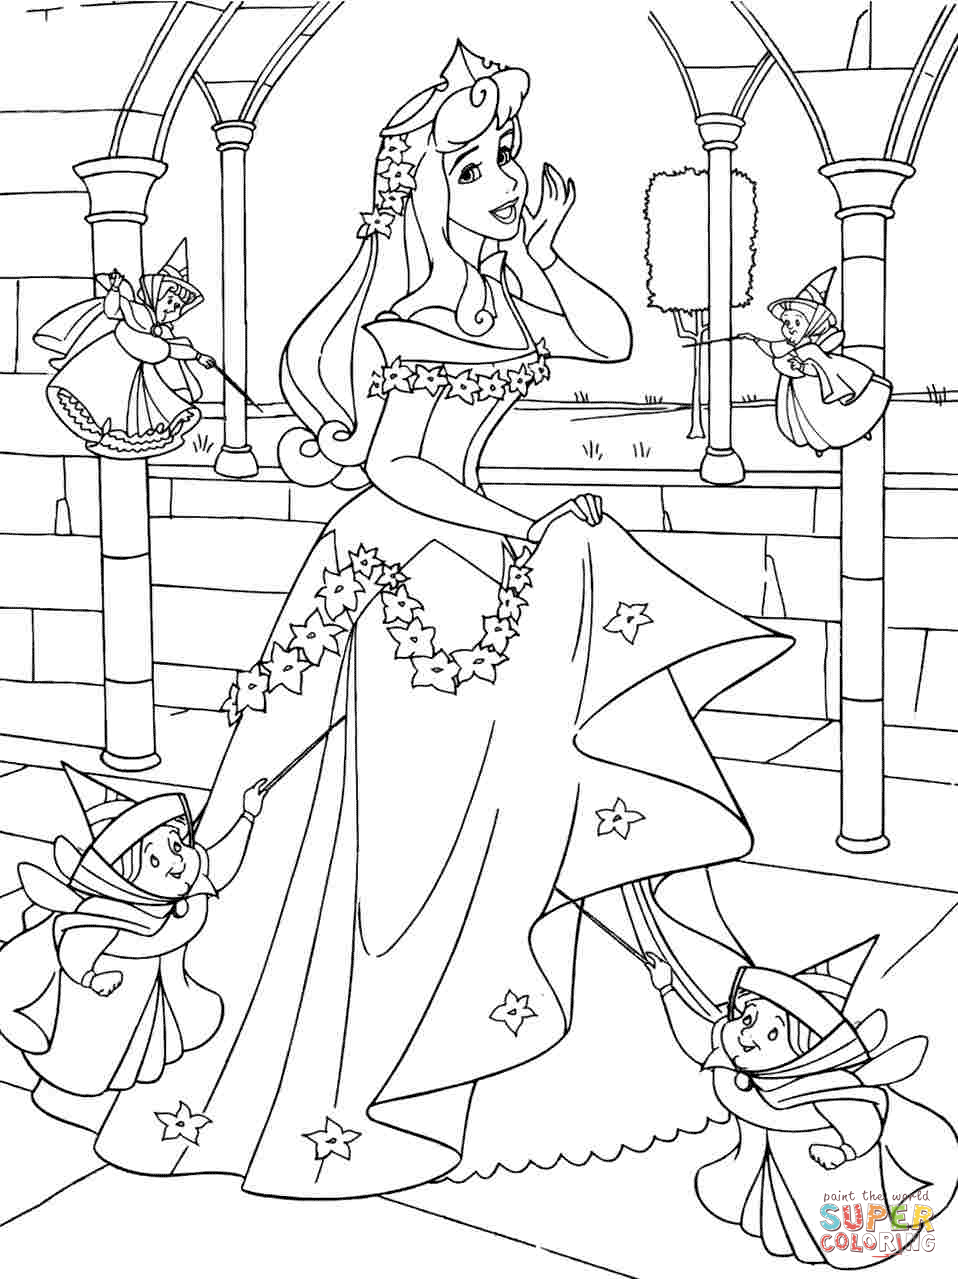 Beautiful Coloring Pages For Adults | Free Printable Coloring ... | 1279x958